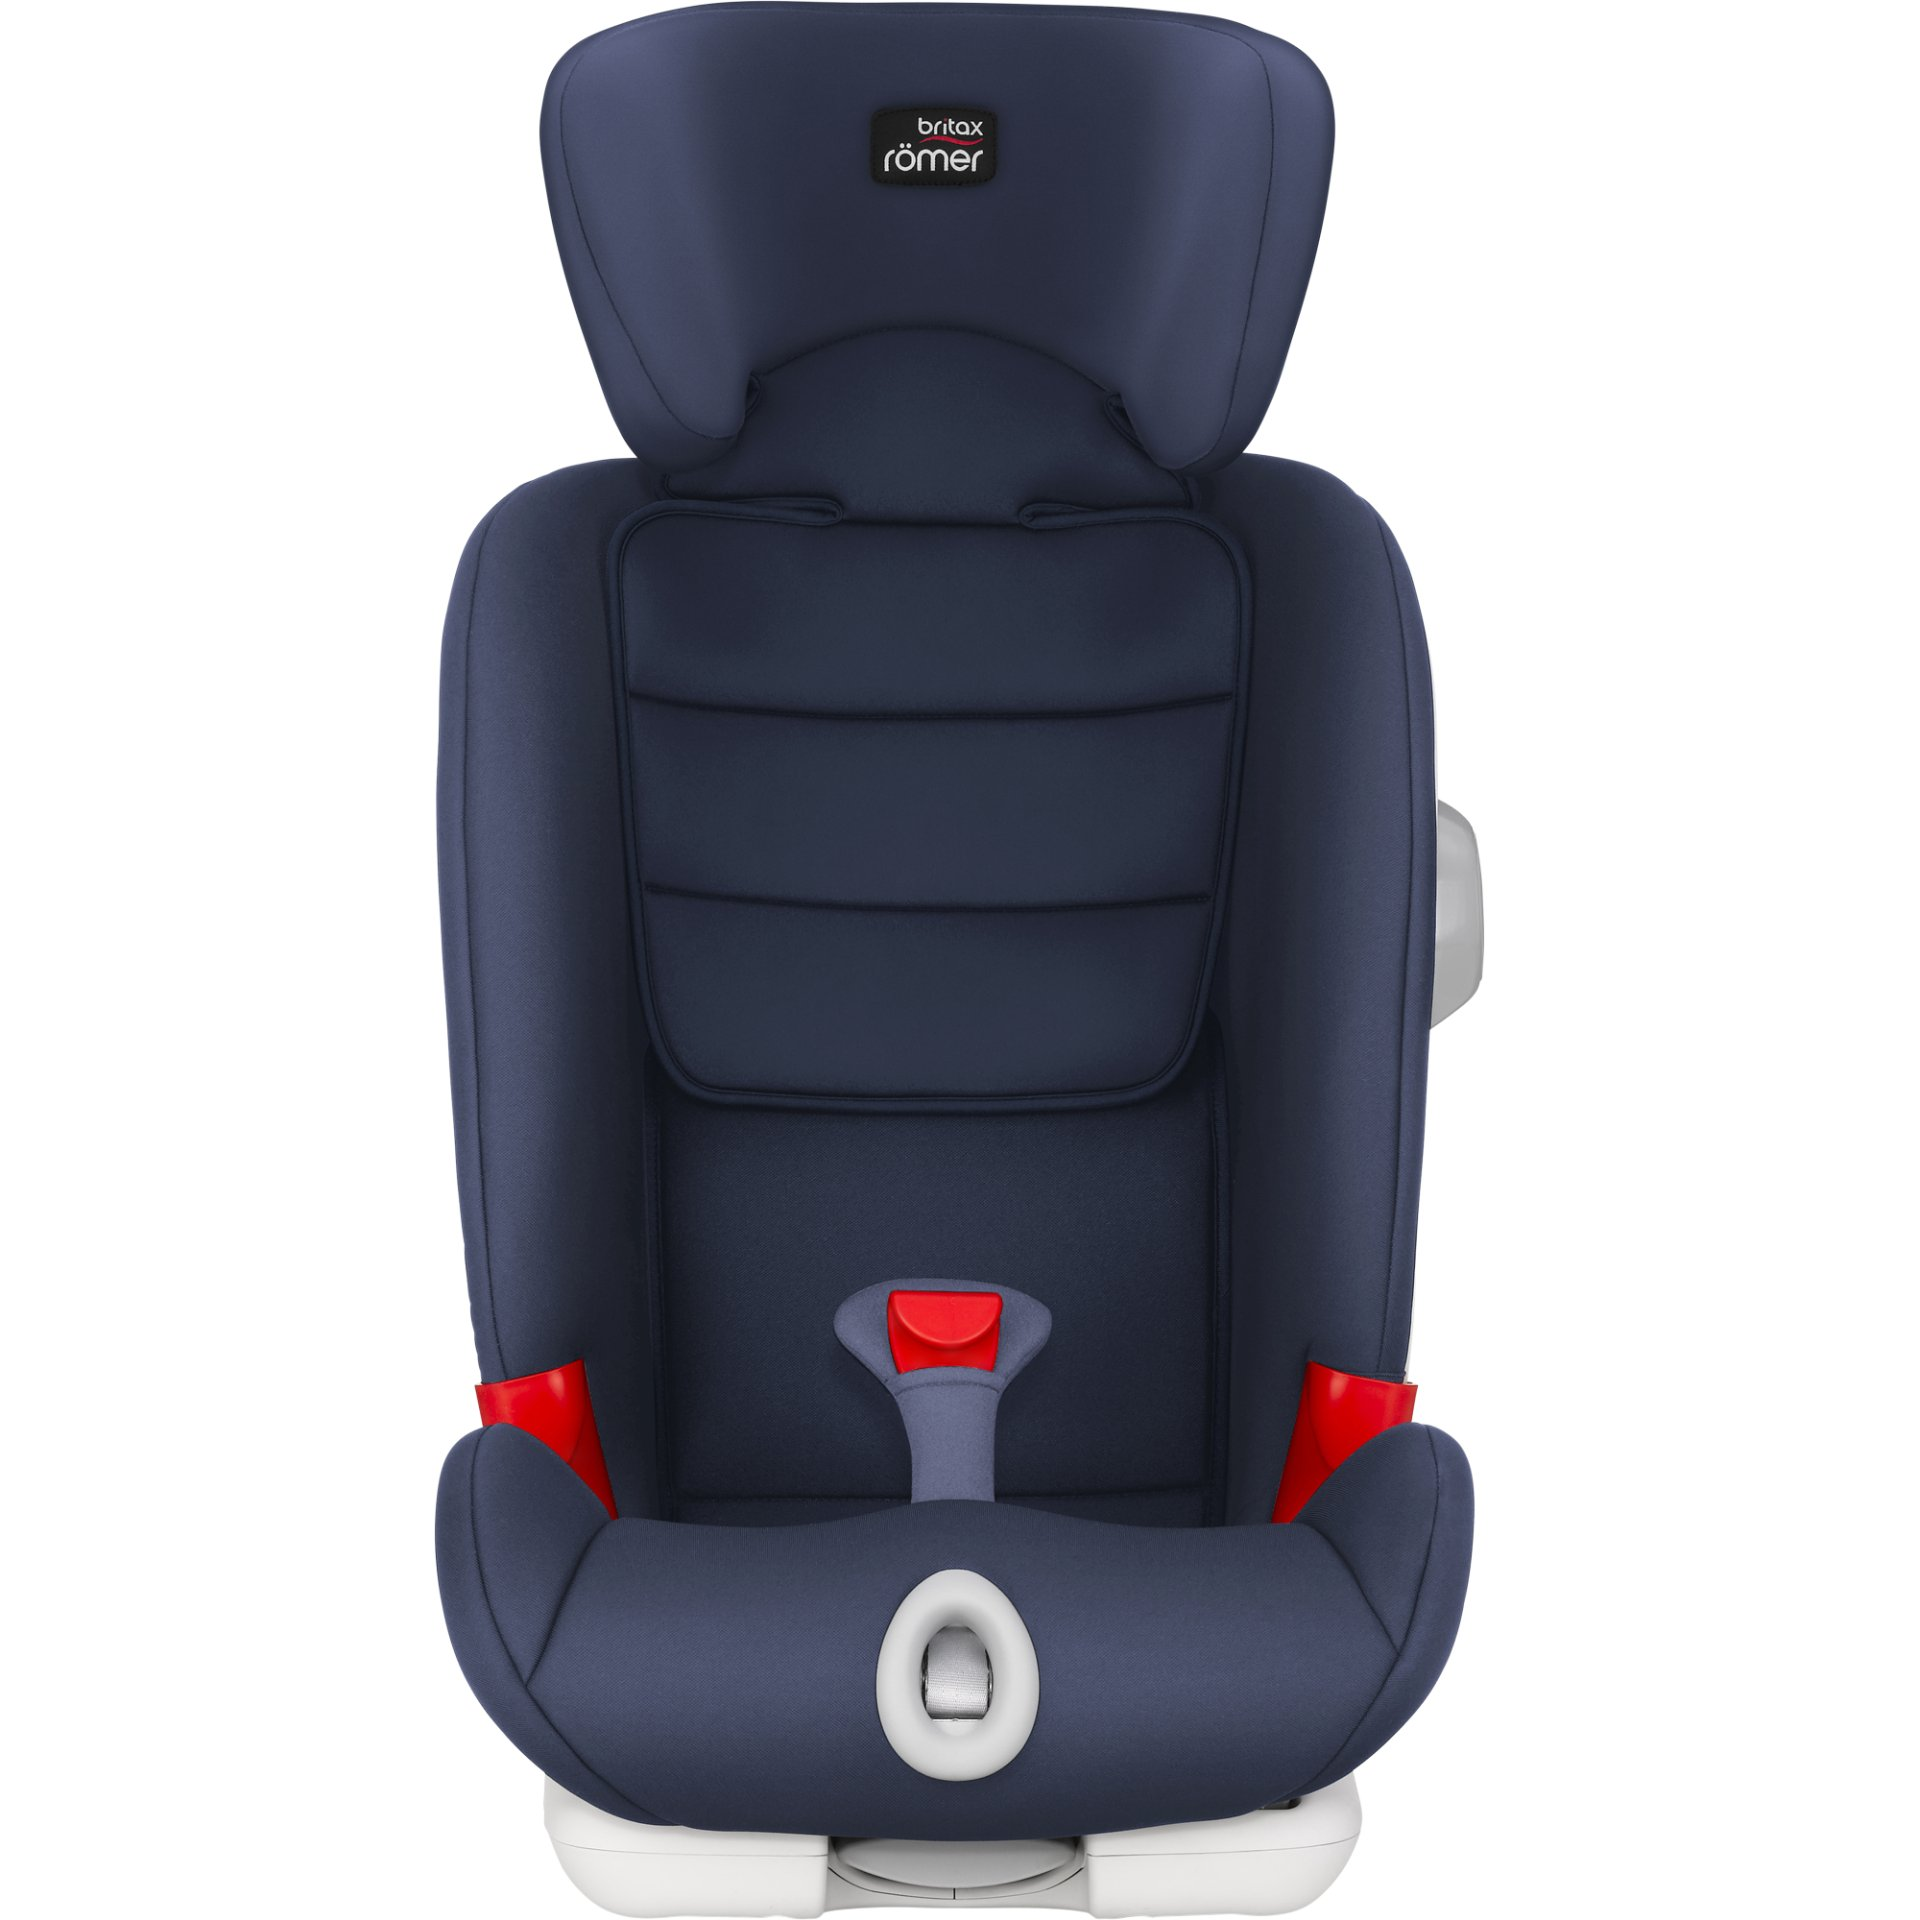 britax r mer car seat advansafix iii sict 2019 moonlight blue buy at kidsroom car seats. Black Bedroom Furniture Sets. Home Design Ideas